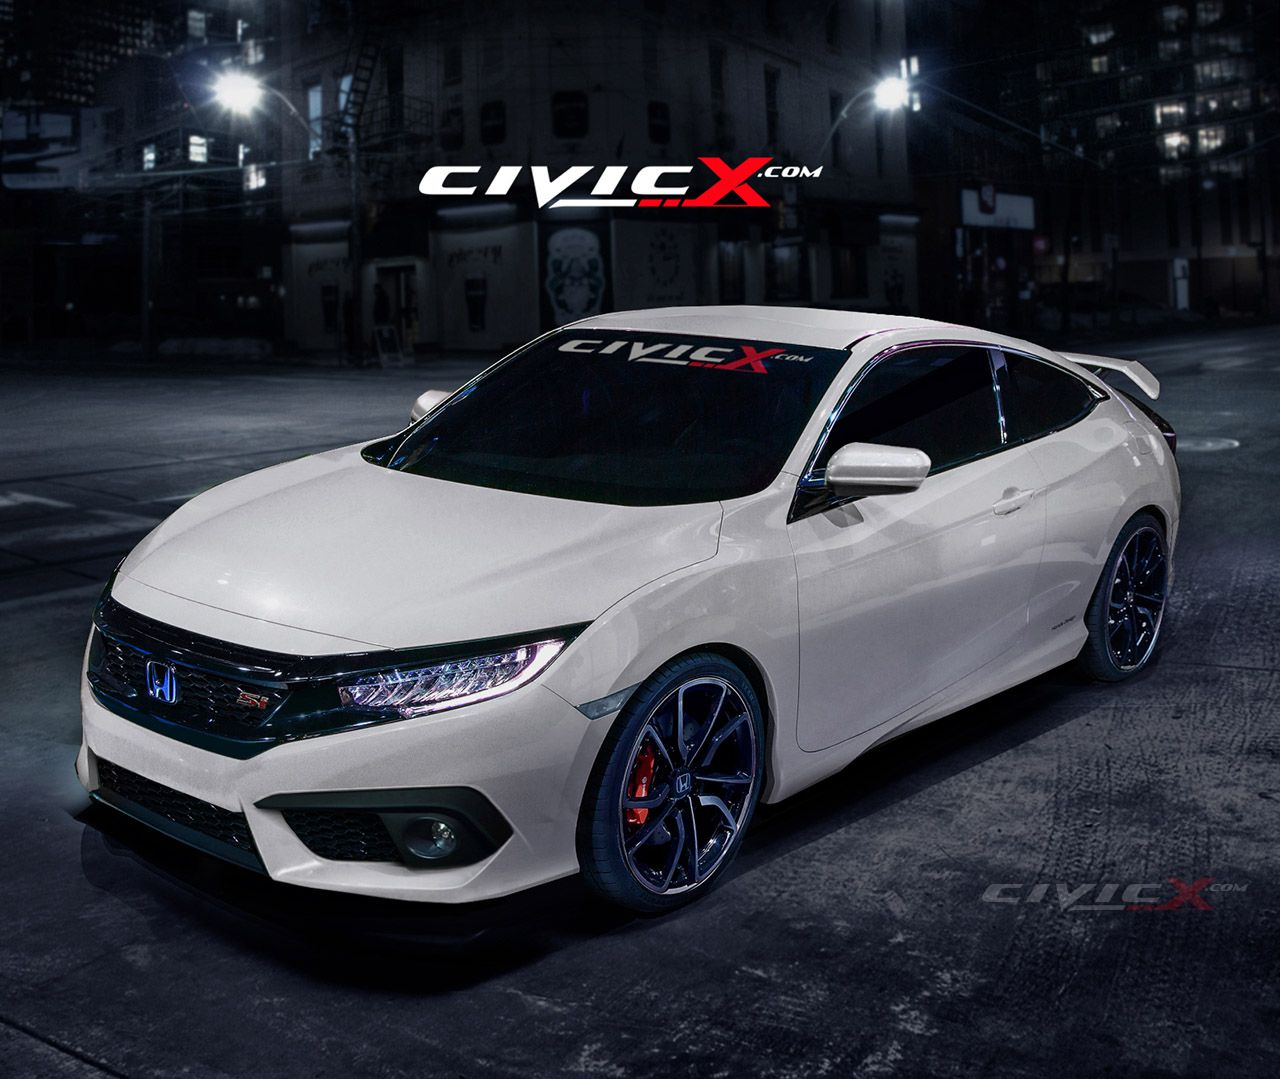 2016 Honda Civic Si (concept) Honda civic si